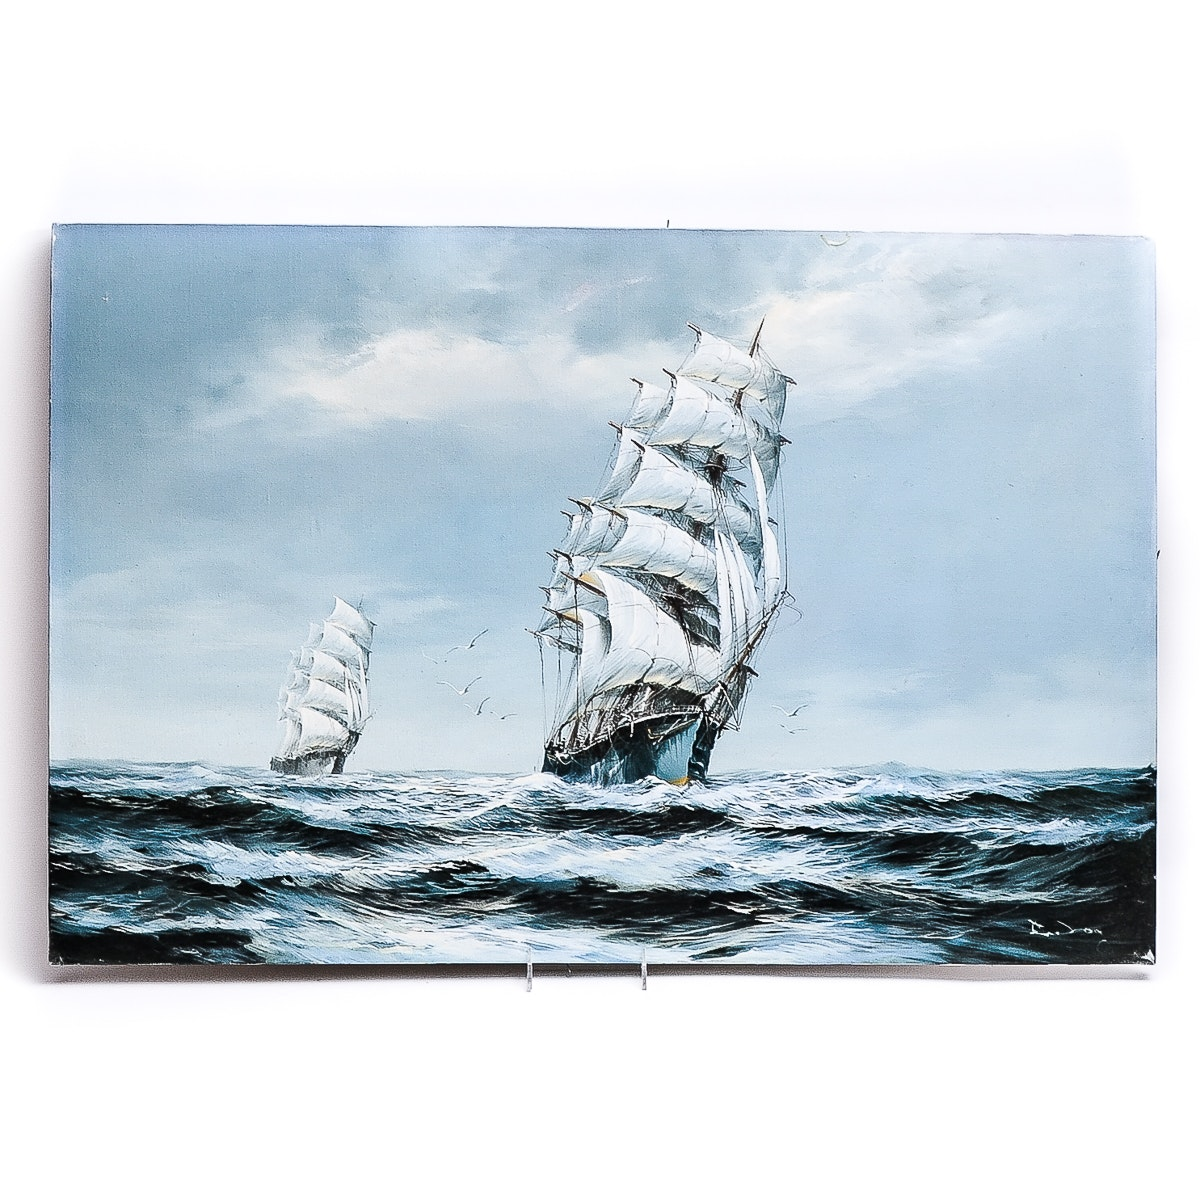 Acrylic on Stretched Canvas Painting of Ships